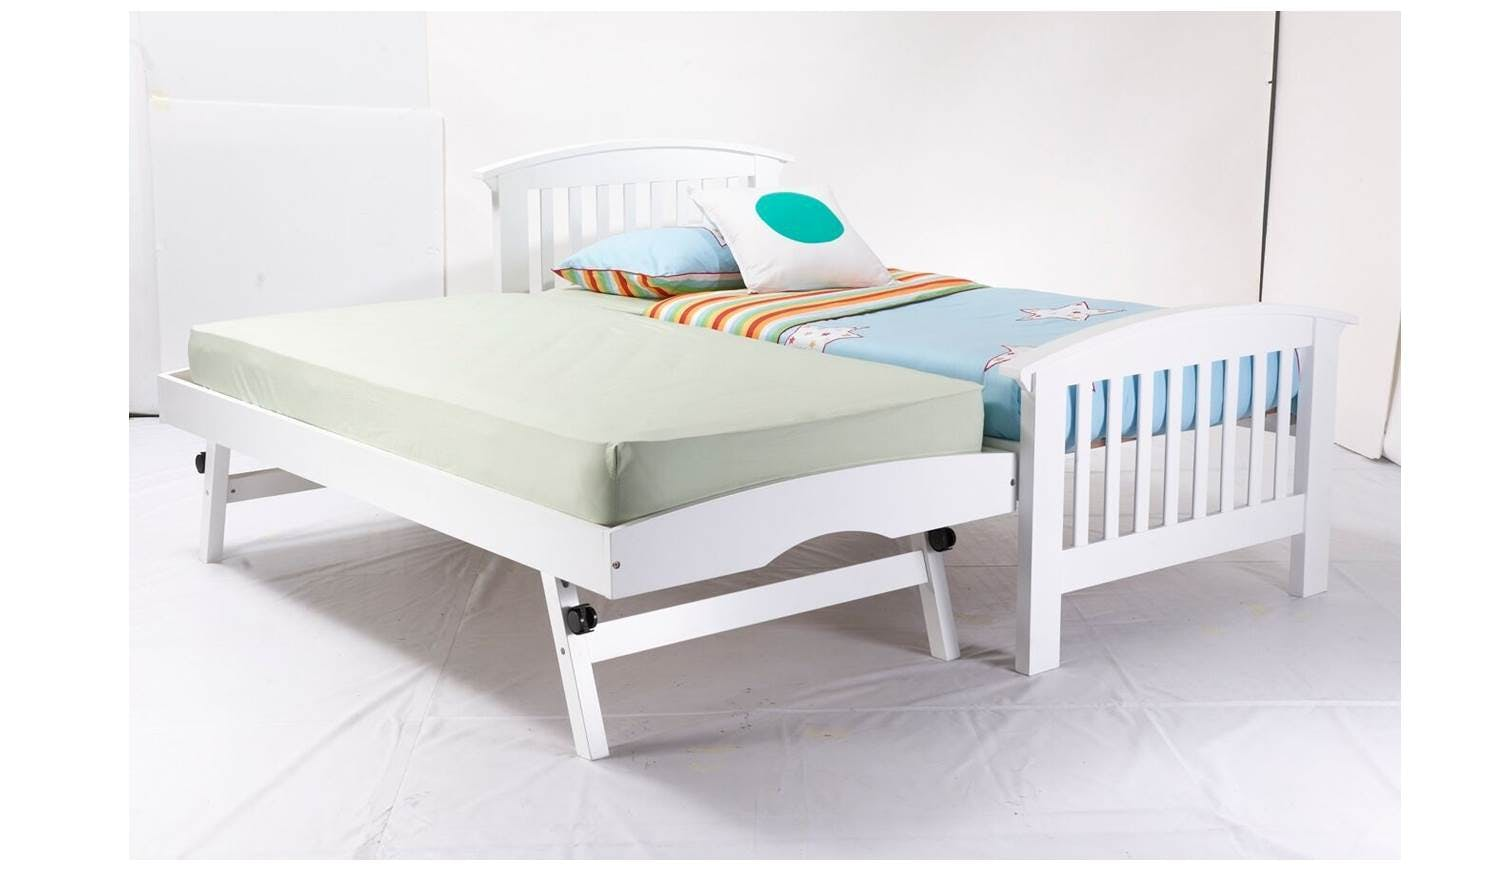 from Jayce dating bed size